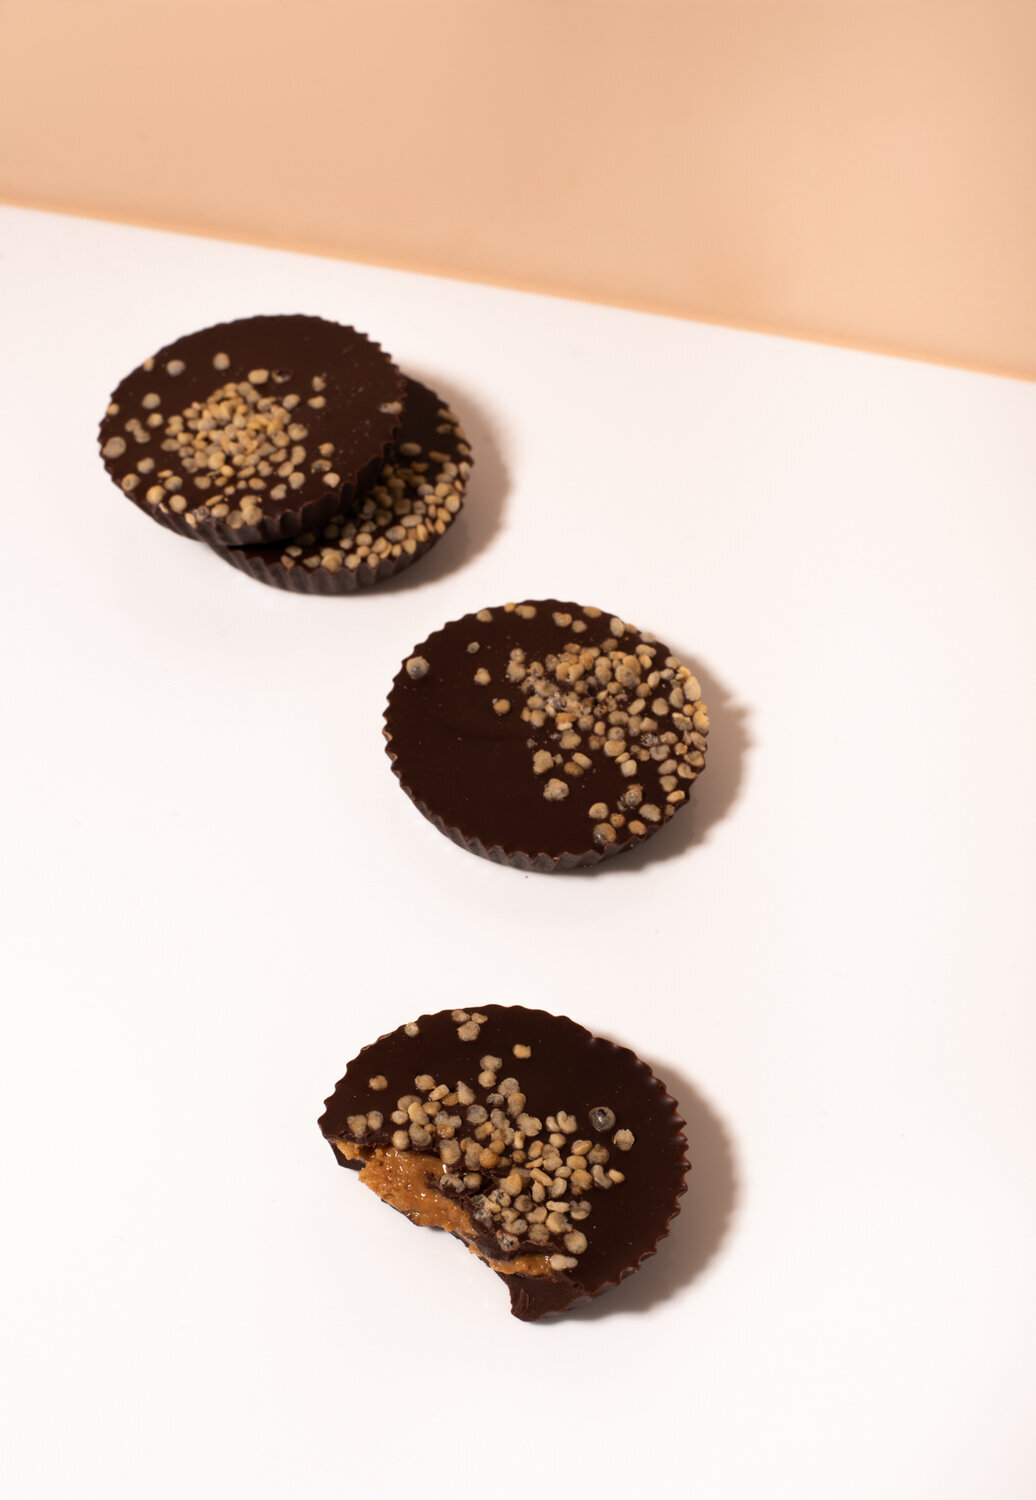 justin's almond butter dark chocolate cups